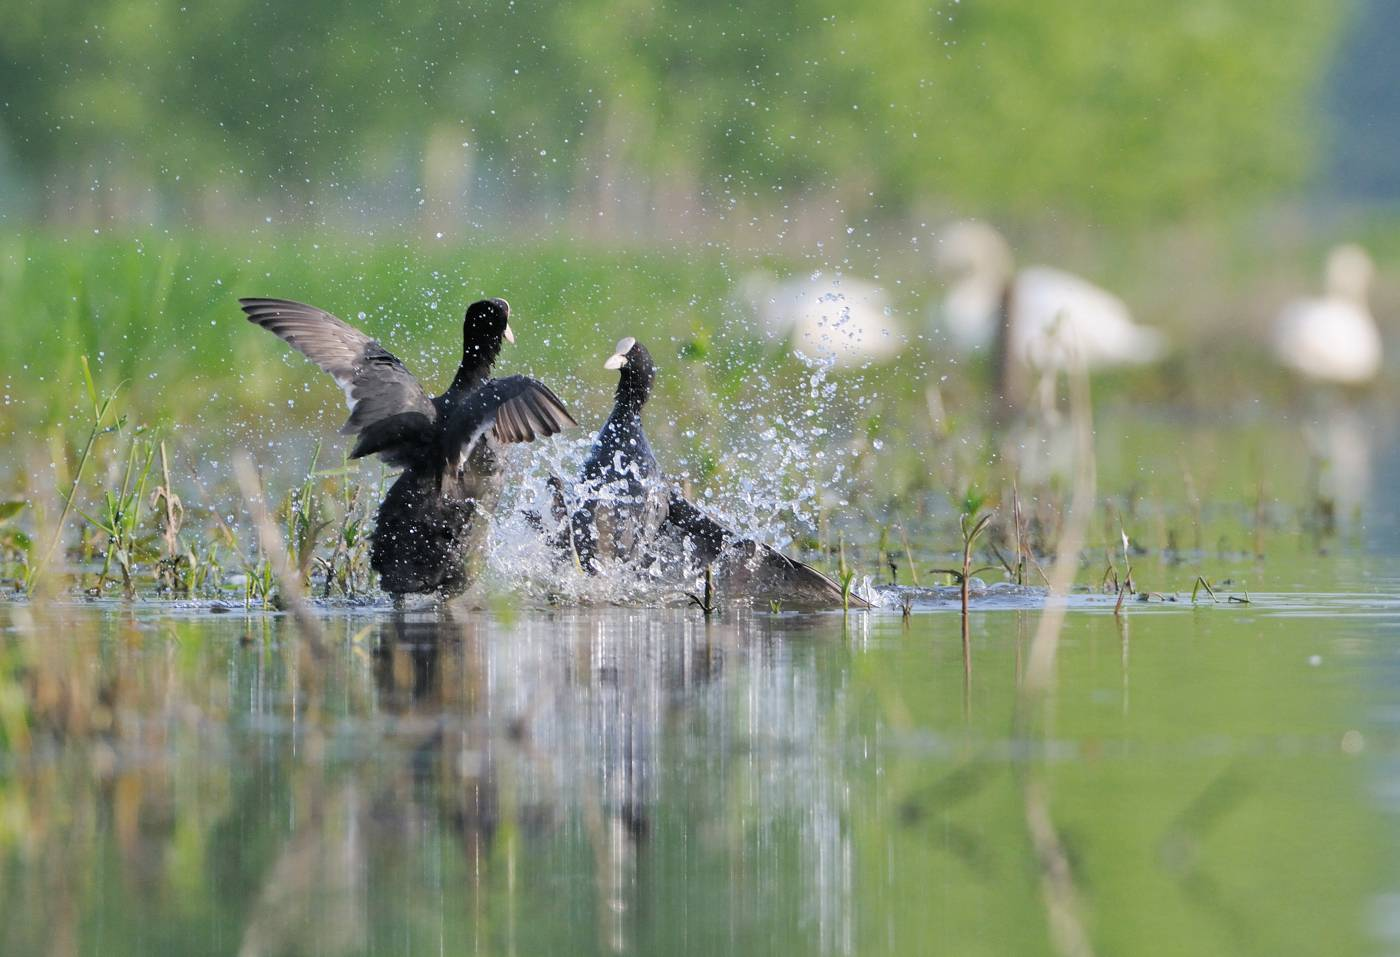 Foulques en furie 2 - Fighting coots 2